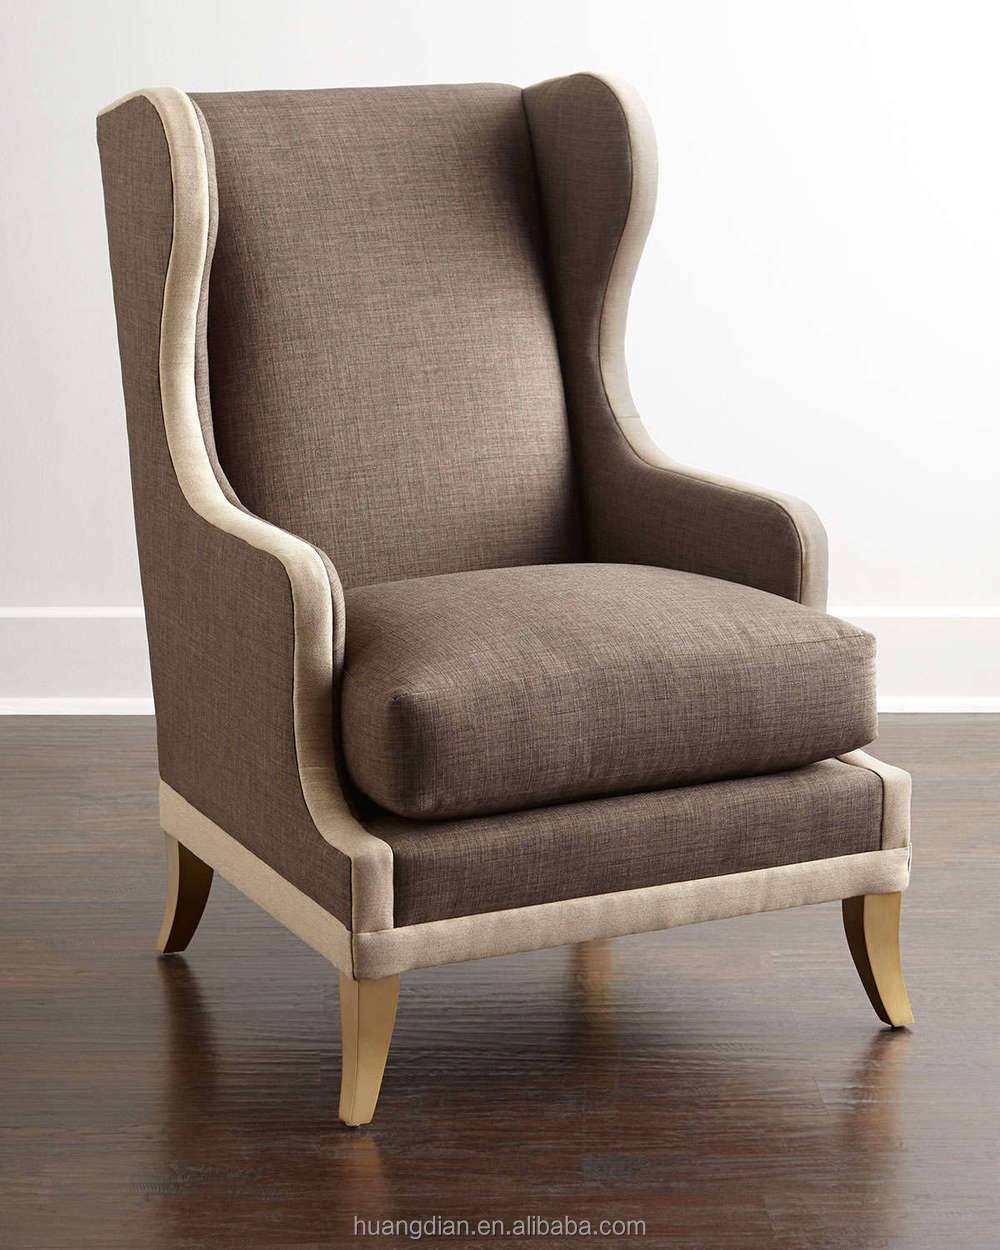 Famous High-back Braunn Wing Chair Sofa Seat Hotel Room Furniture Bed  JU32